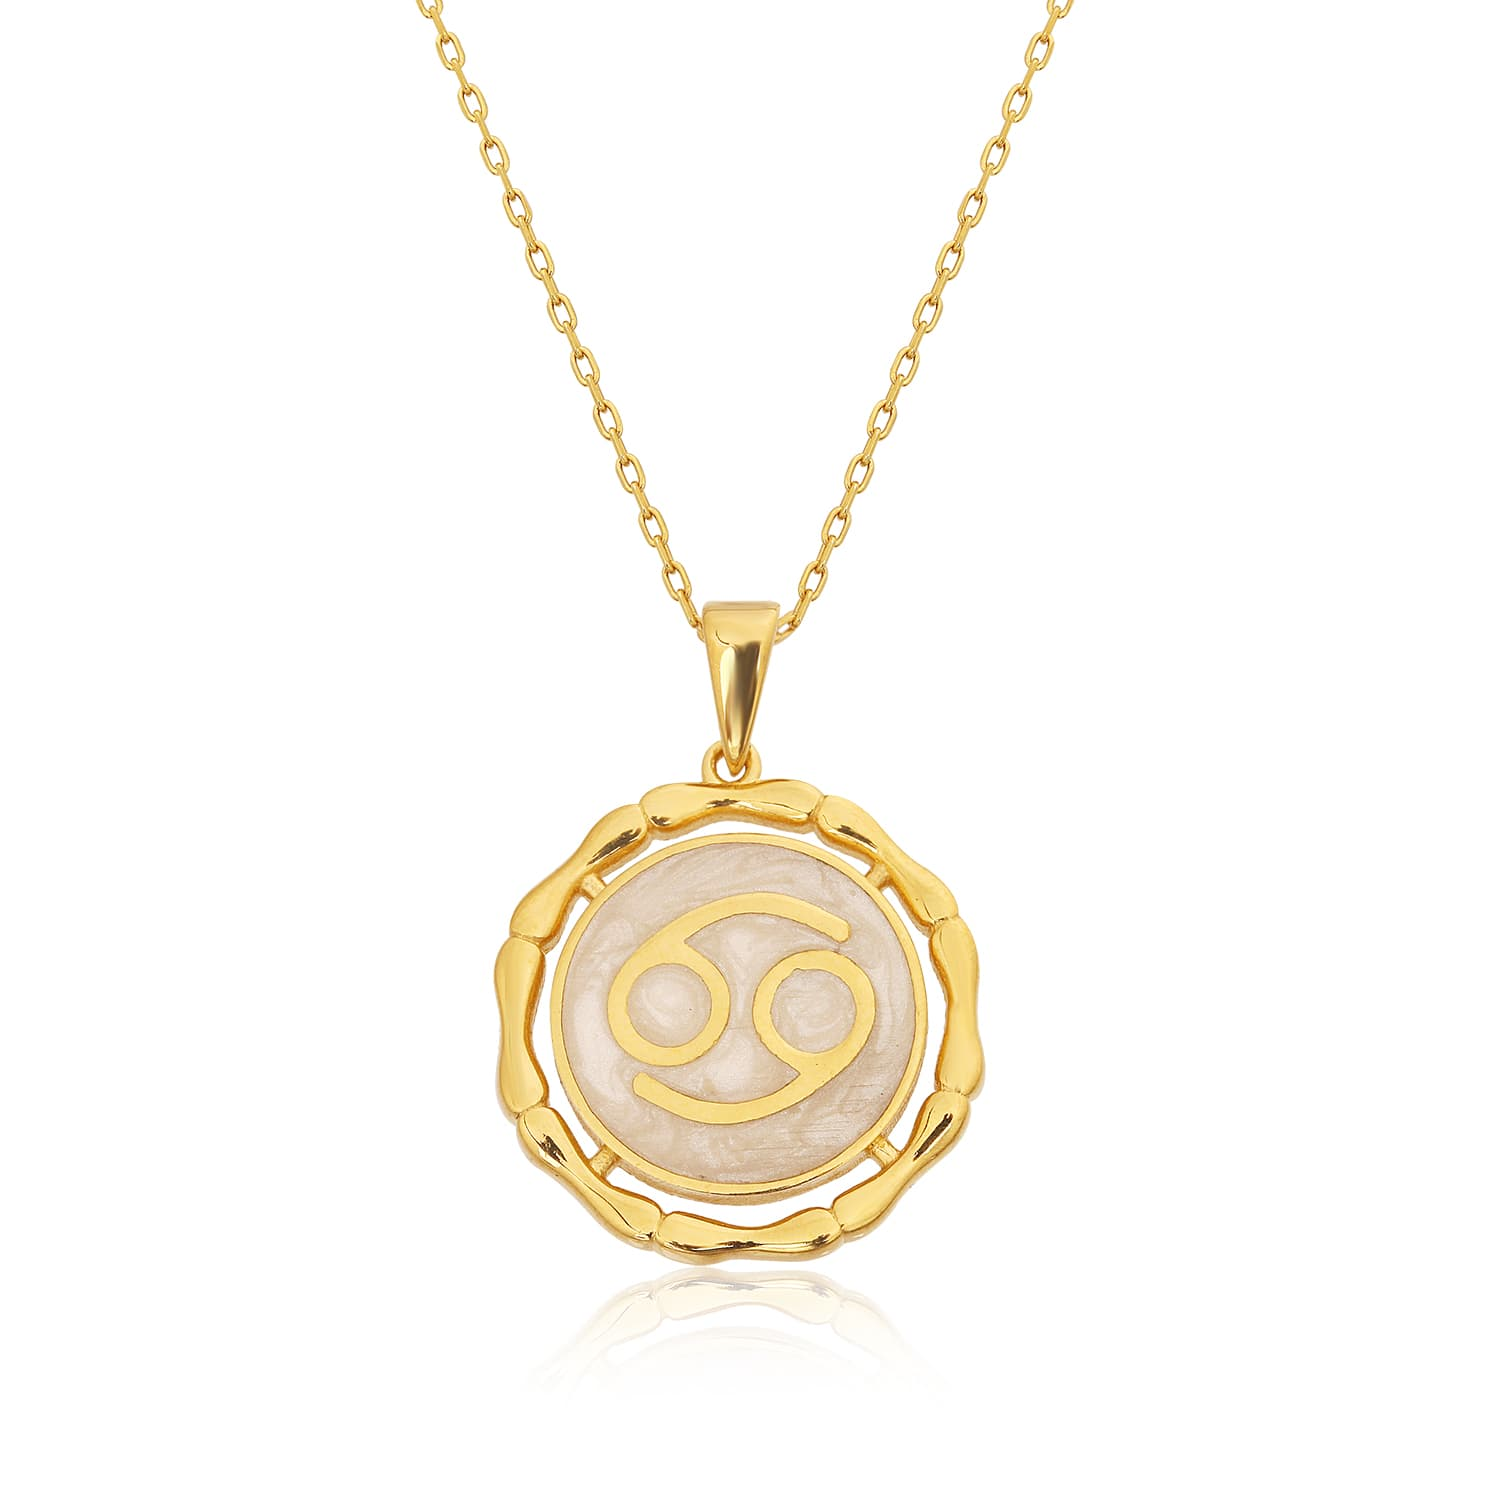 CANCER MINNED NECKLACE